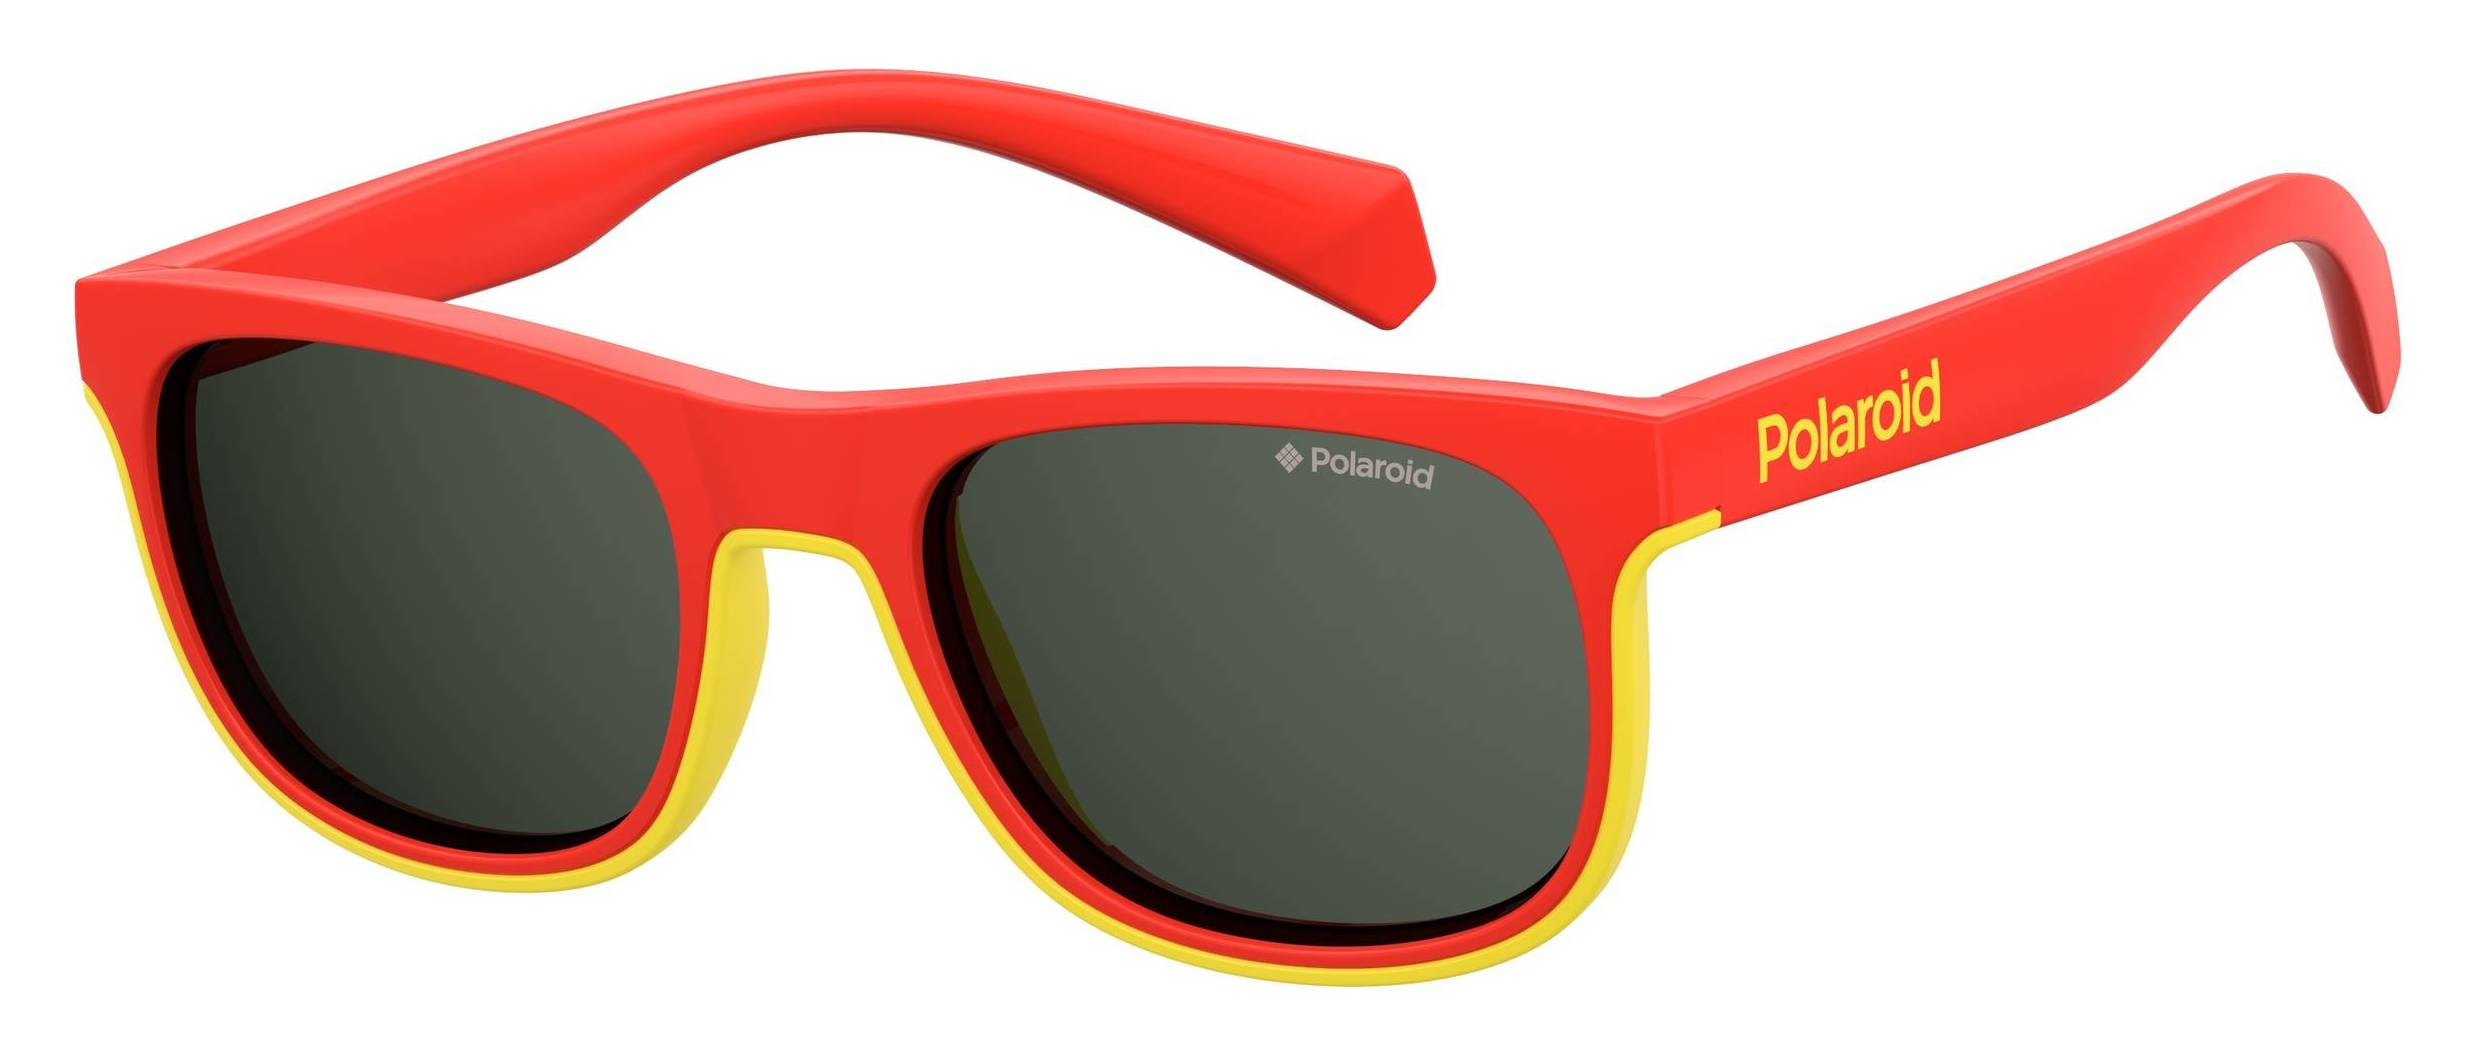 45fa30cb38da Eyewear for Kids - Polaroid - Optiwow